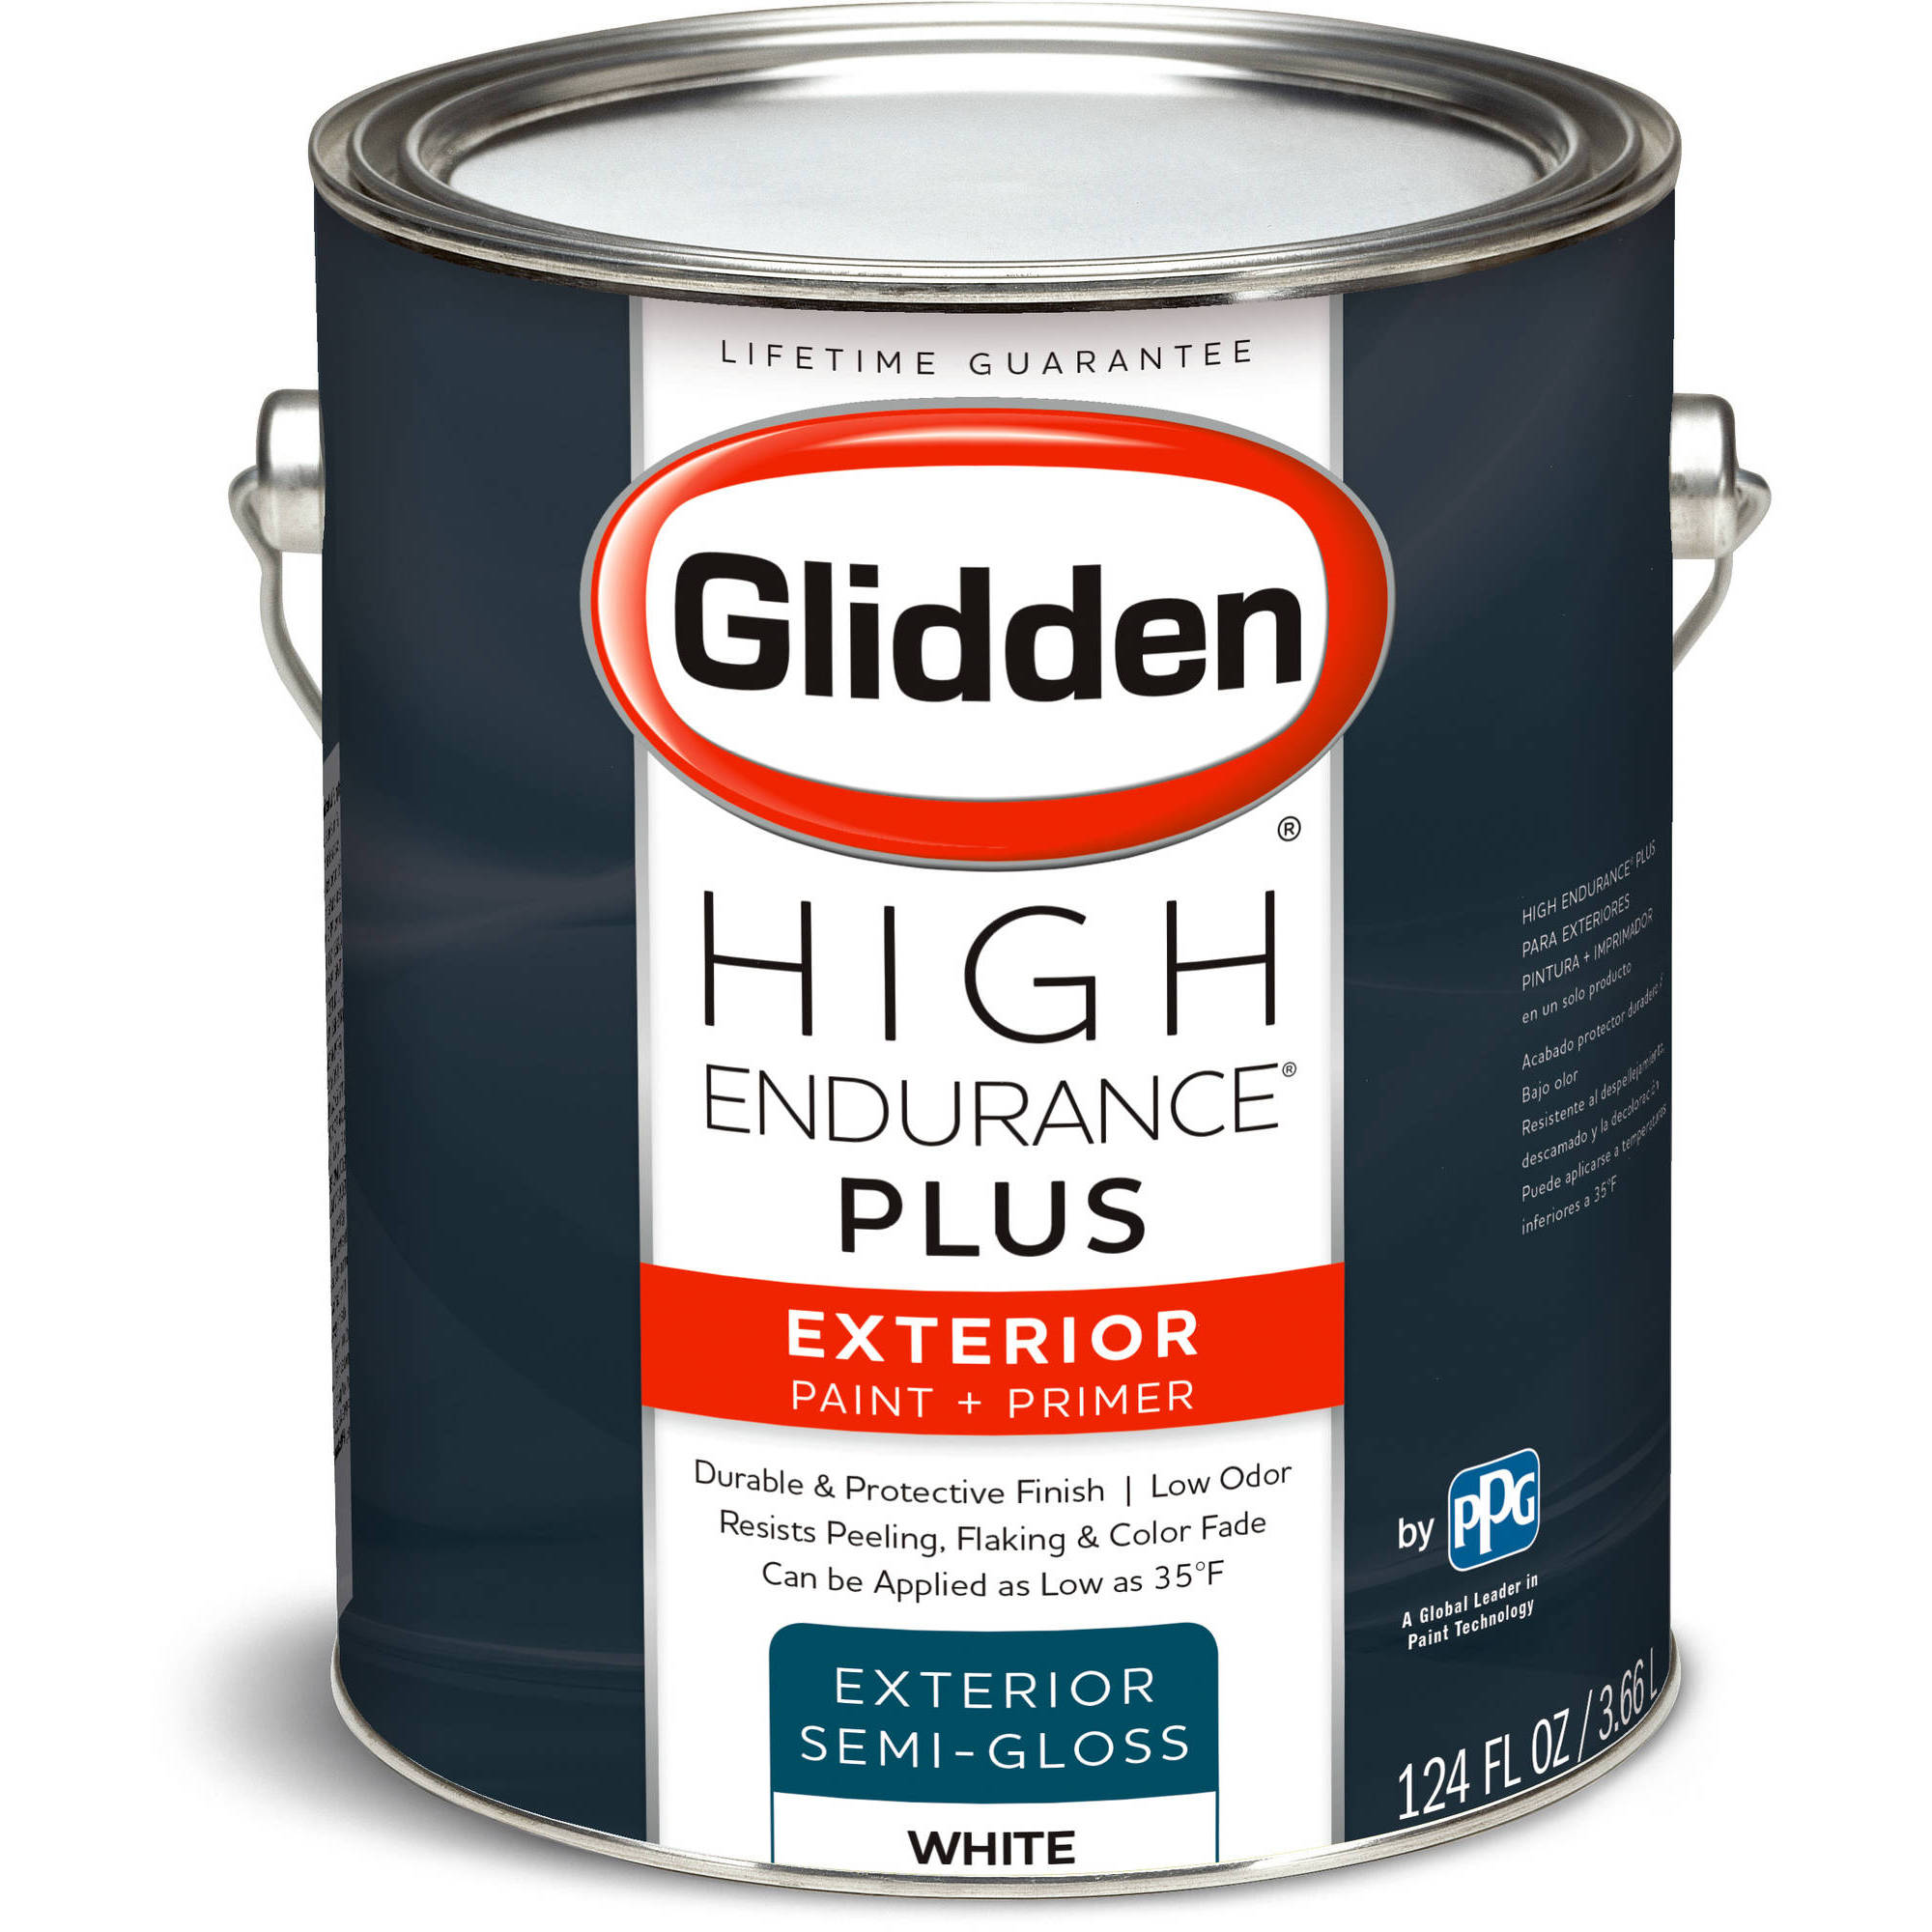 Glidden High Endurance Plus Exterior Paint and Primer Ready Mix